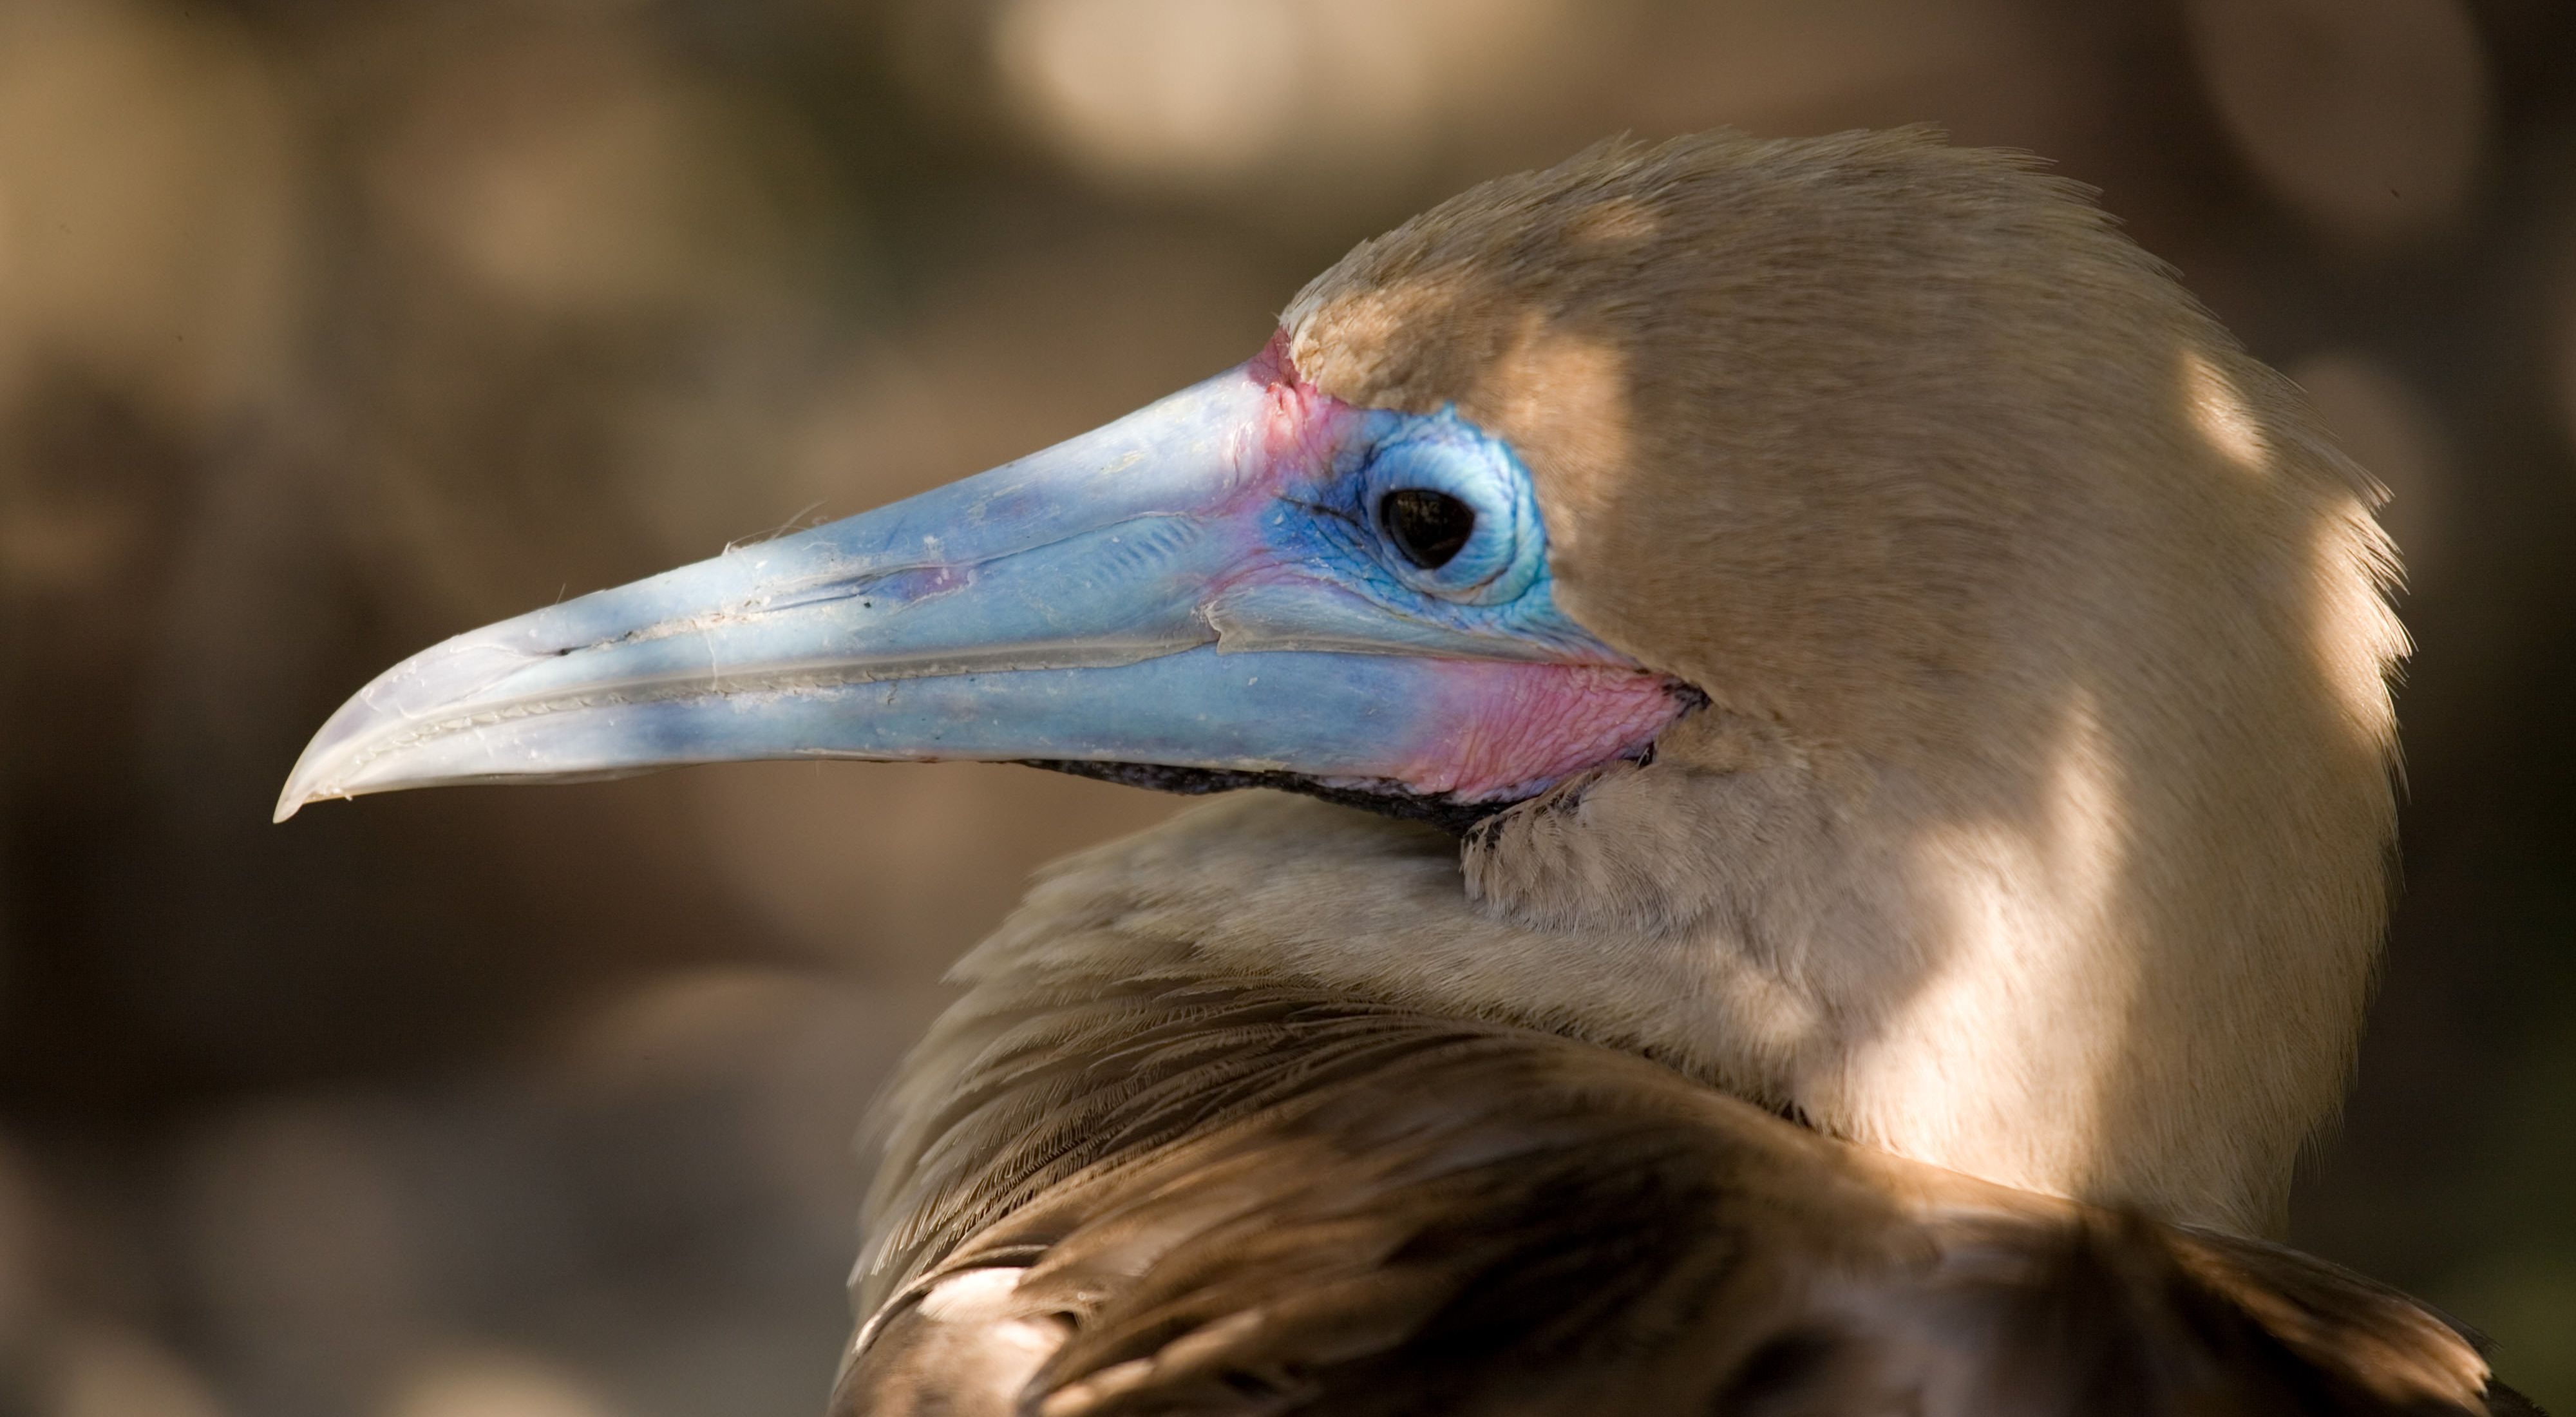 side view closeup of a white and brown bird with a blue beak